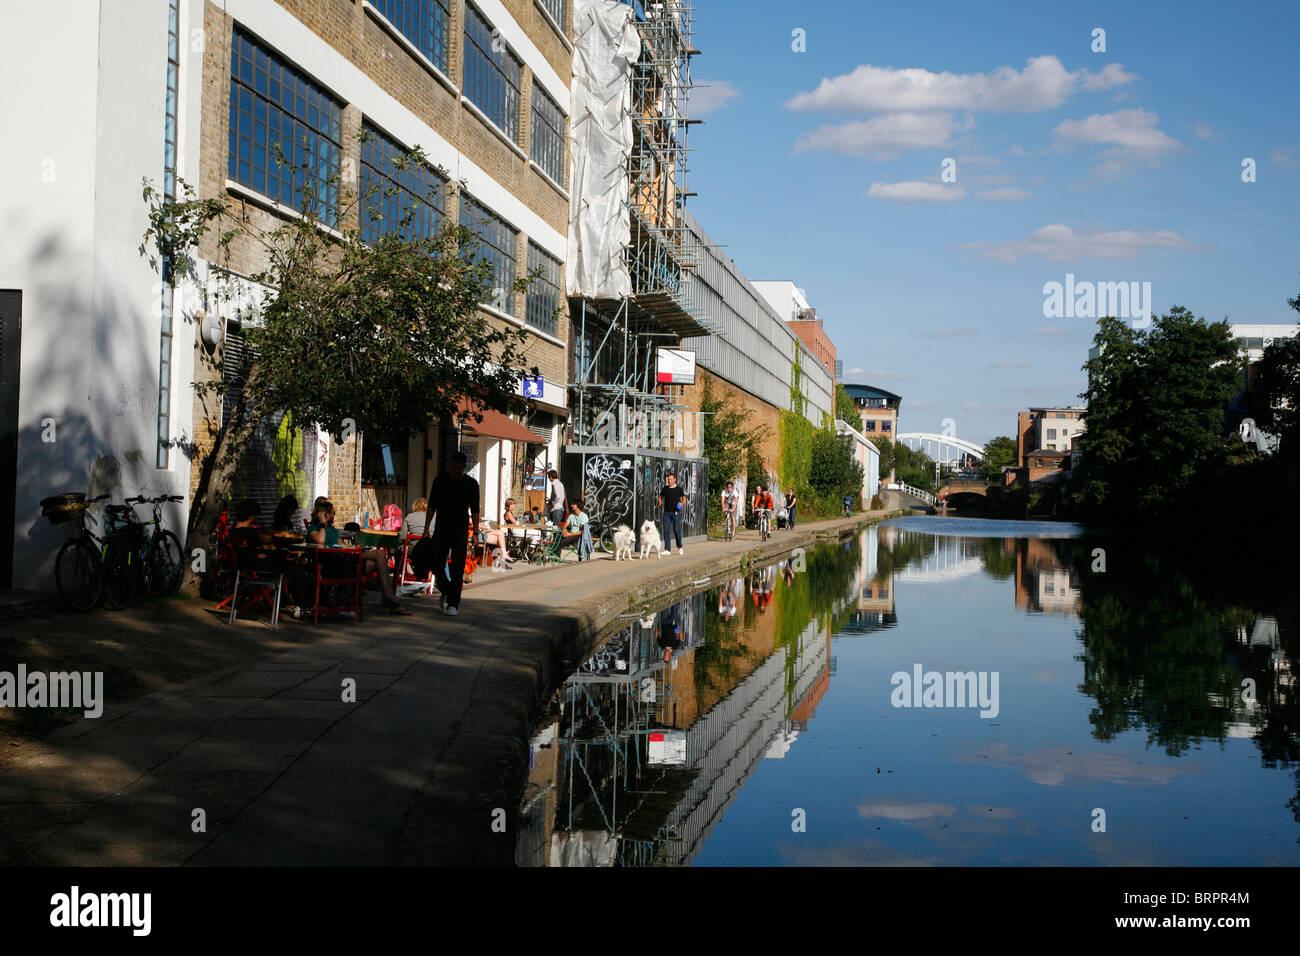 Tow Path restaurant on the Regent's Canal at De Beauvoir Town, London, UK - Stock Image